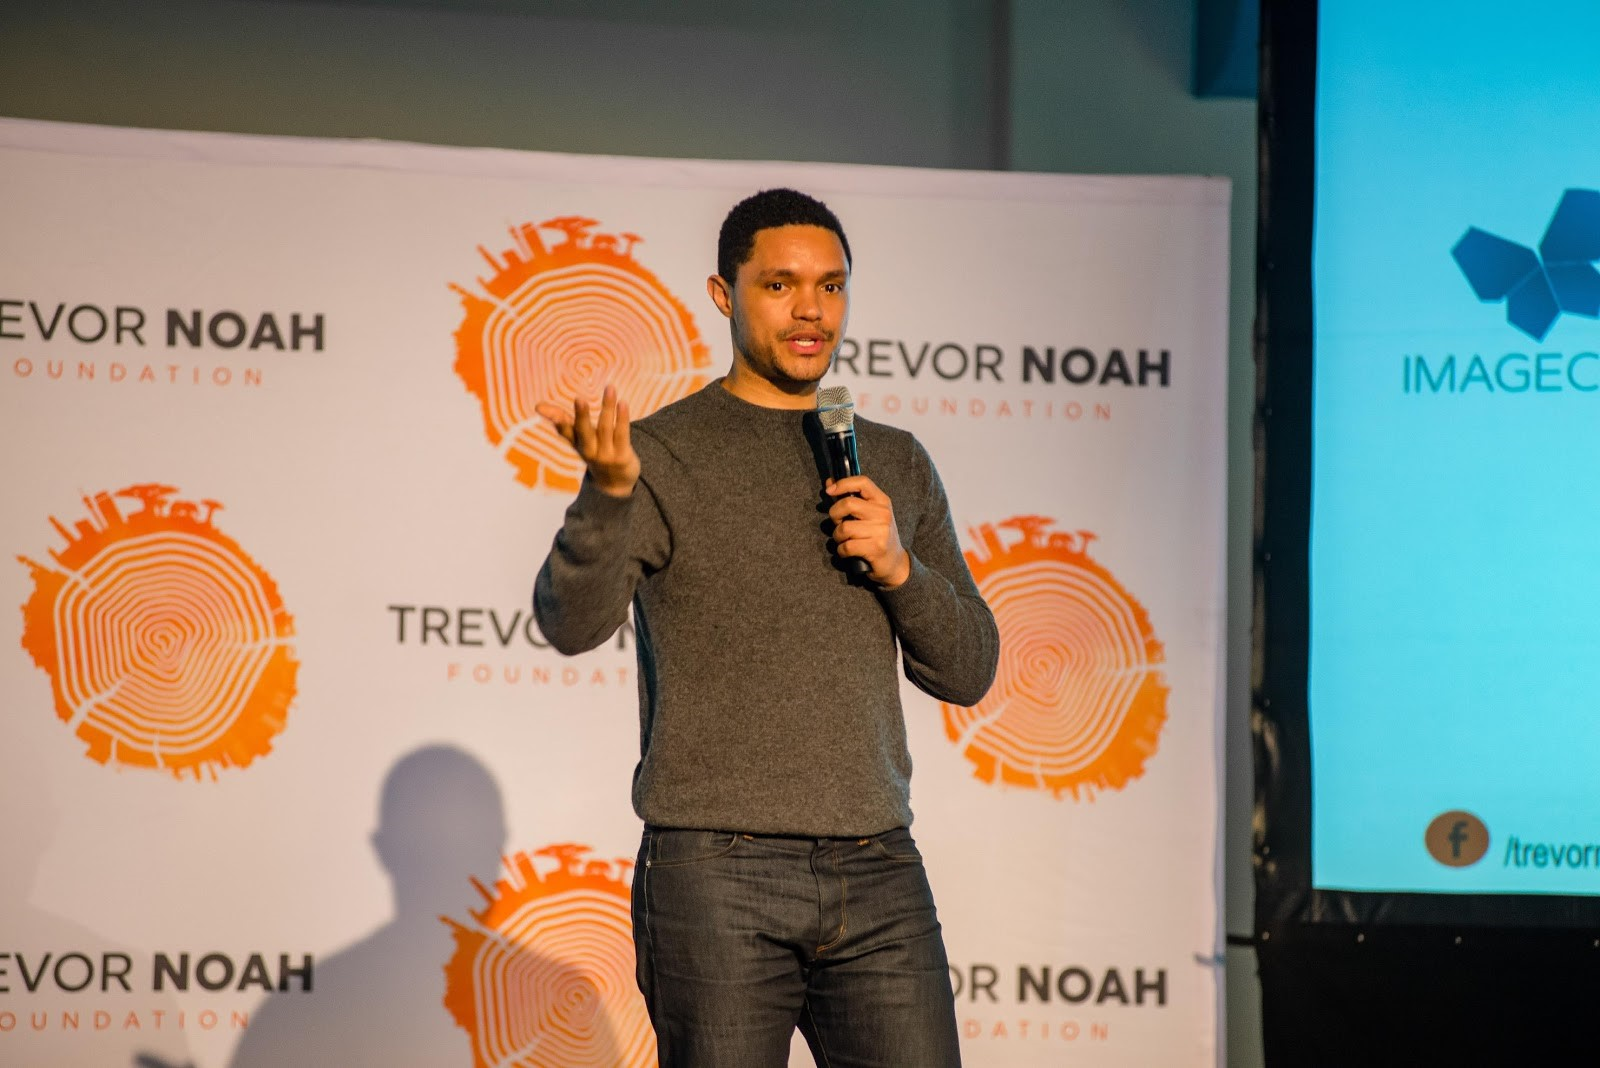 Trevor Noah Launches R2Million Matched Giving Crowdfunding Campaign